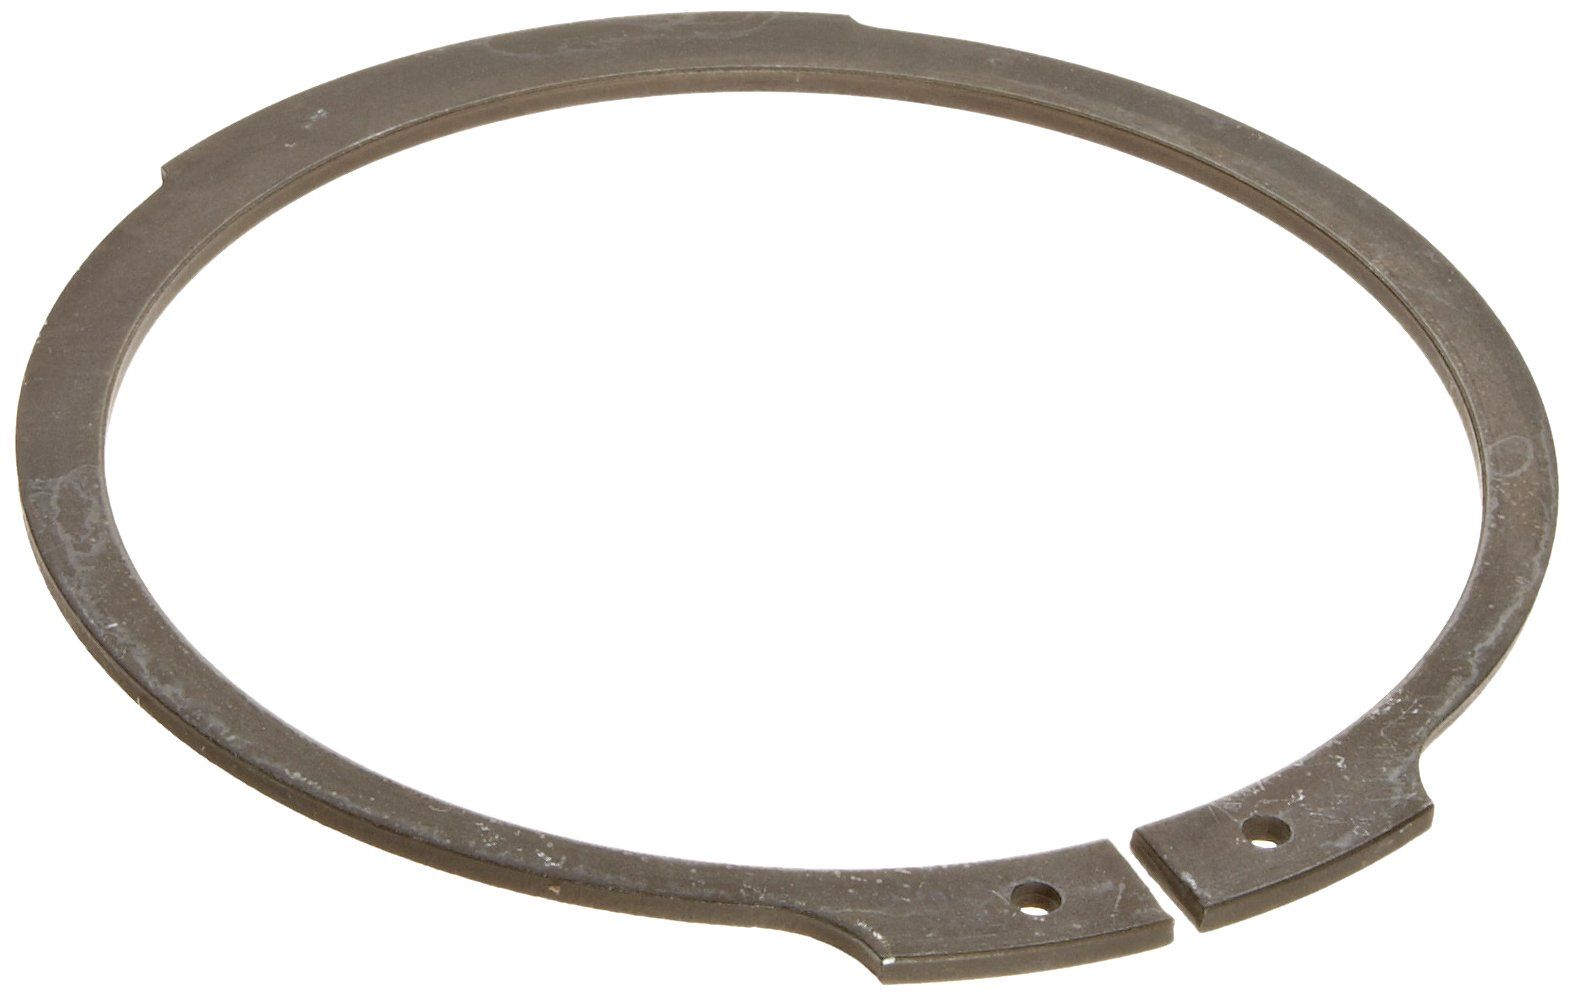 Standard External Retaining Ring, Tapered Section, Axial Assembly, 1060-1090 Carbon Steel, Phosphate Finish, 2-3/8'' Shaft Diameter, 0.078'' Thick, Made in US (Pack of 5)